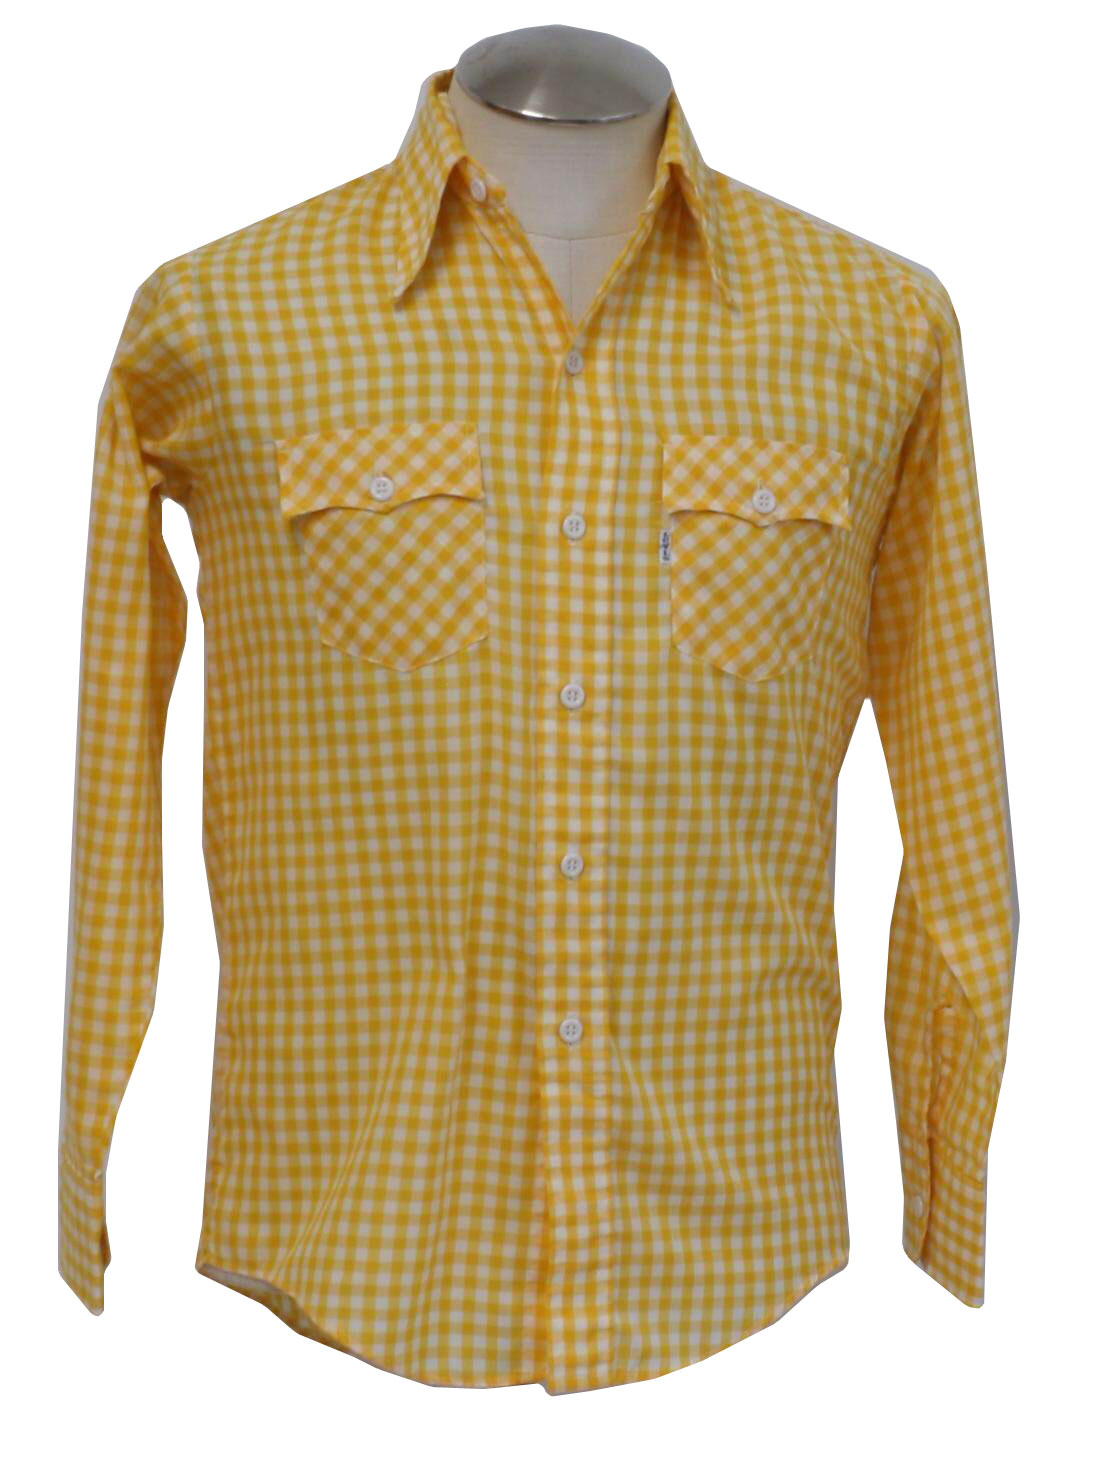 Vintage 1970 39 s western shirt 70s levis mens yellow and for Mens yellow gingham shirt